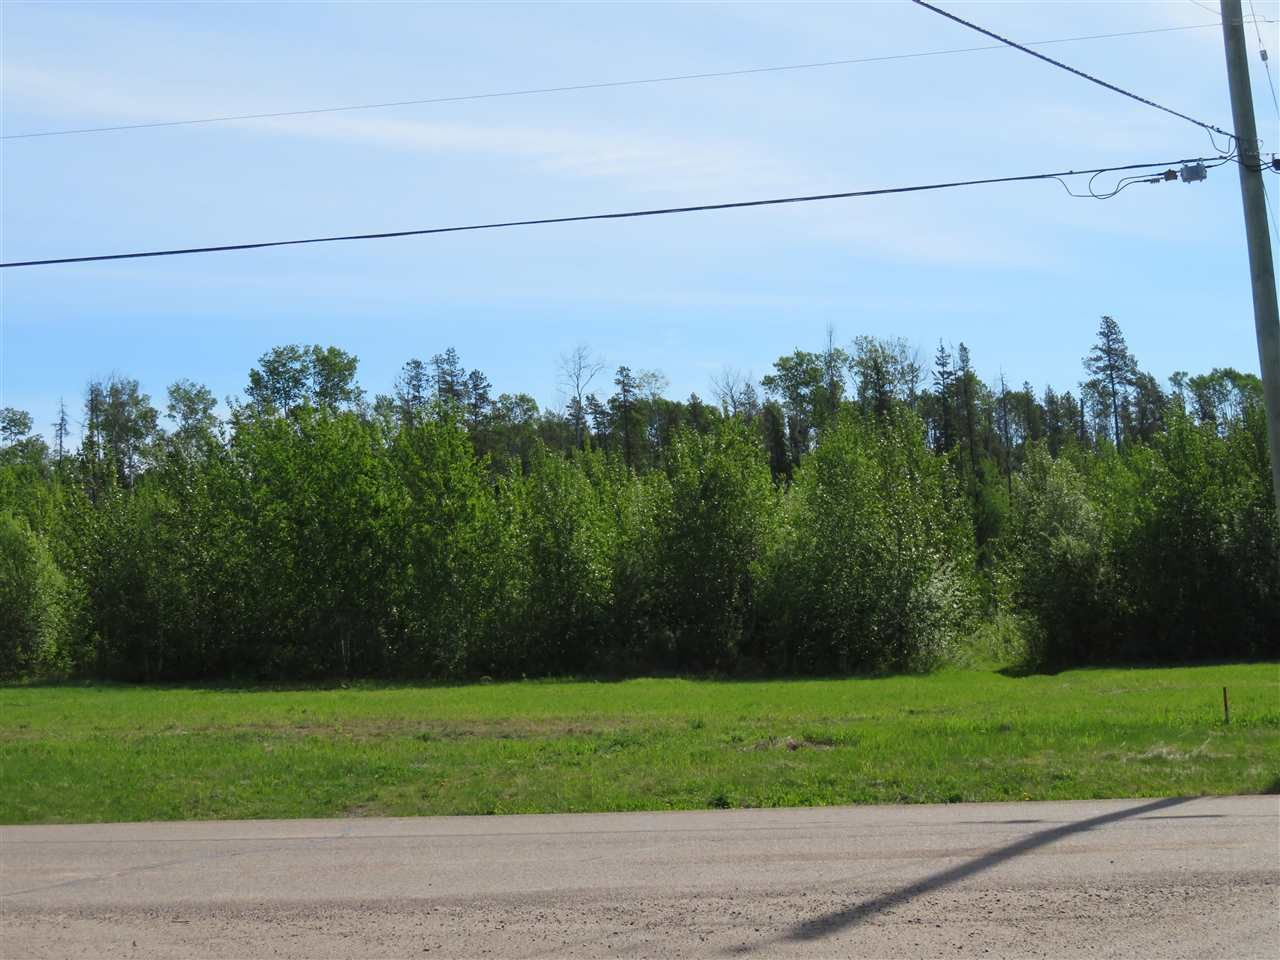 Main Photo: 19 6550 OLD ALASKA Highway in Fort Nelson: Fort Nelson - Rural Land for sale (Fort Nelson (Zone 64))  : MLS®# R2294219